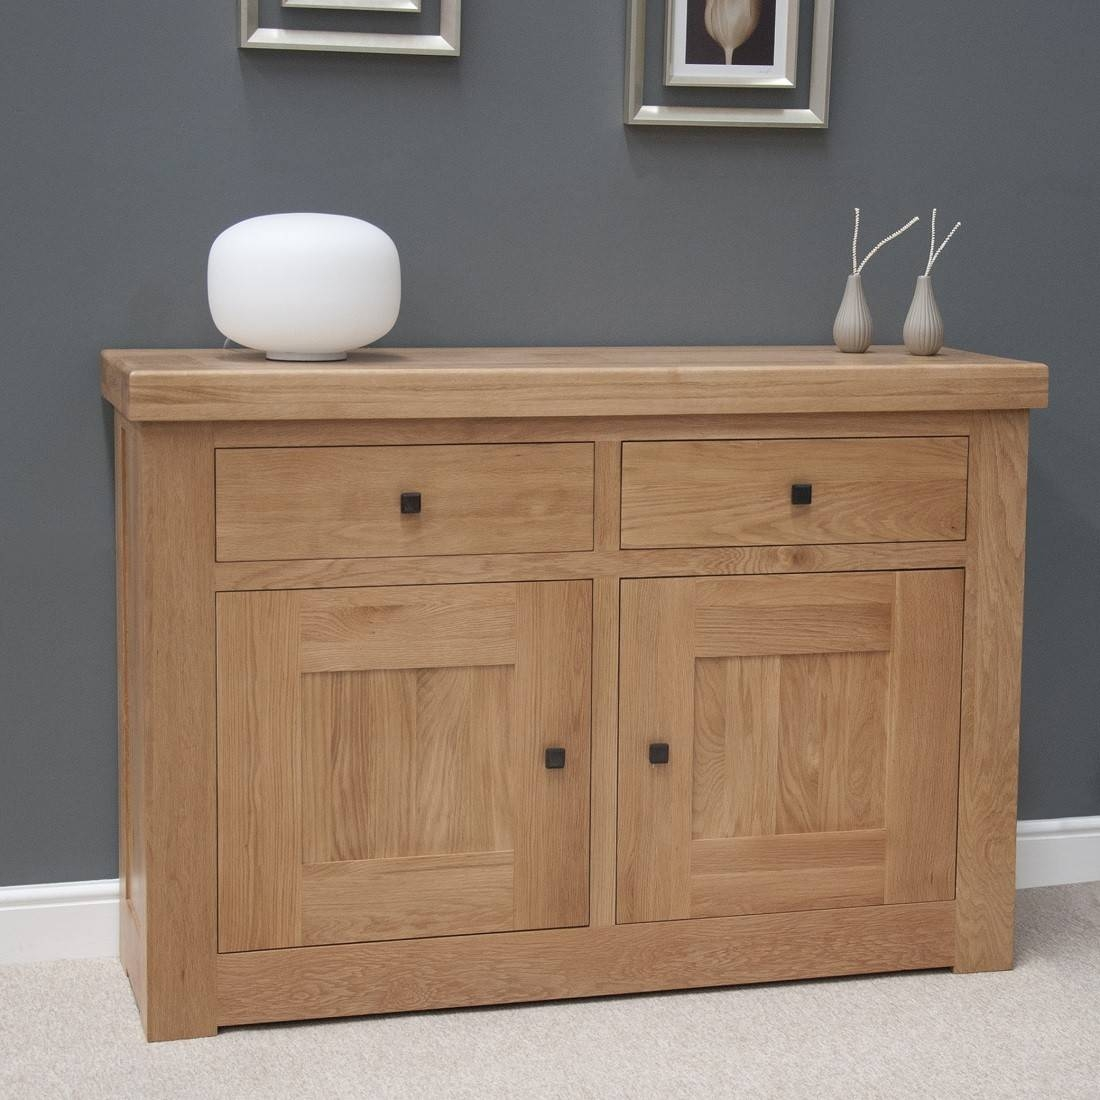 French Bordeaux Oak Small 2 Door Sideboard | Oak Furniture Uk intended for 2 Door Sideboards (Image 7 of 15)